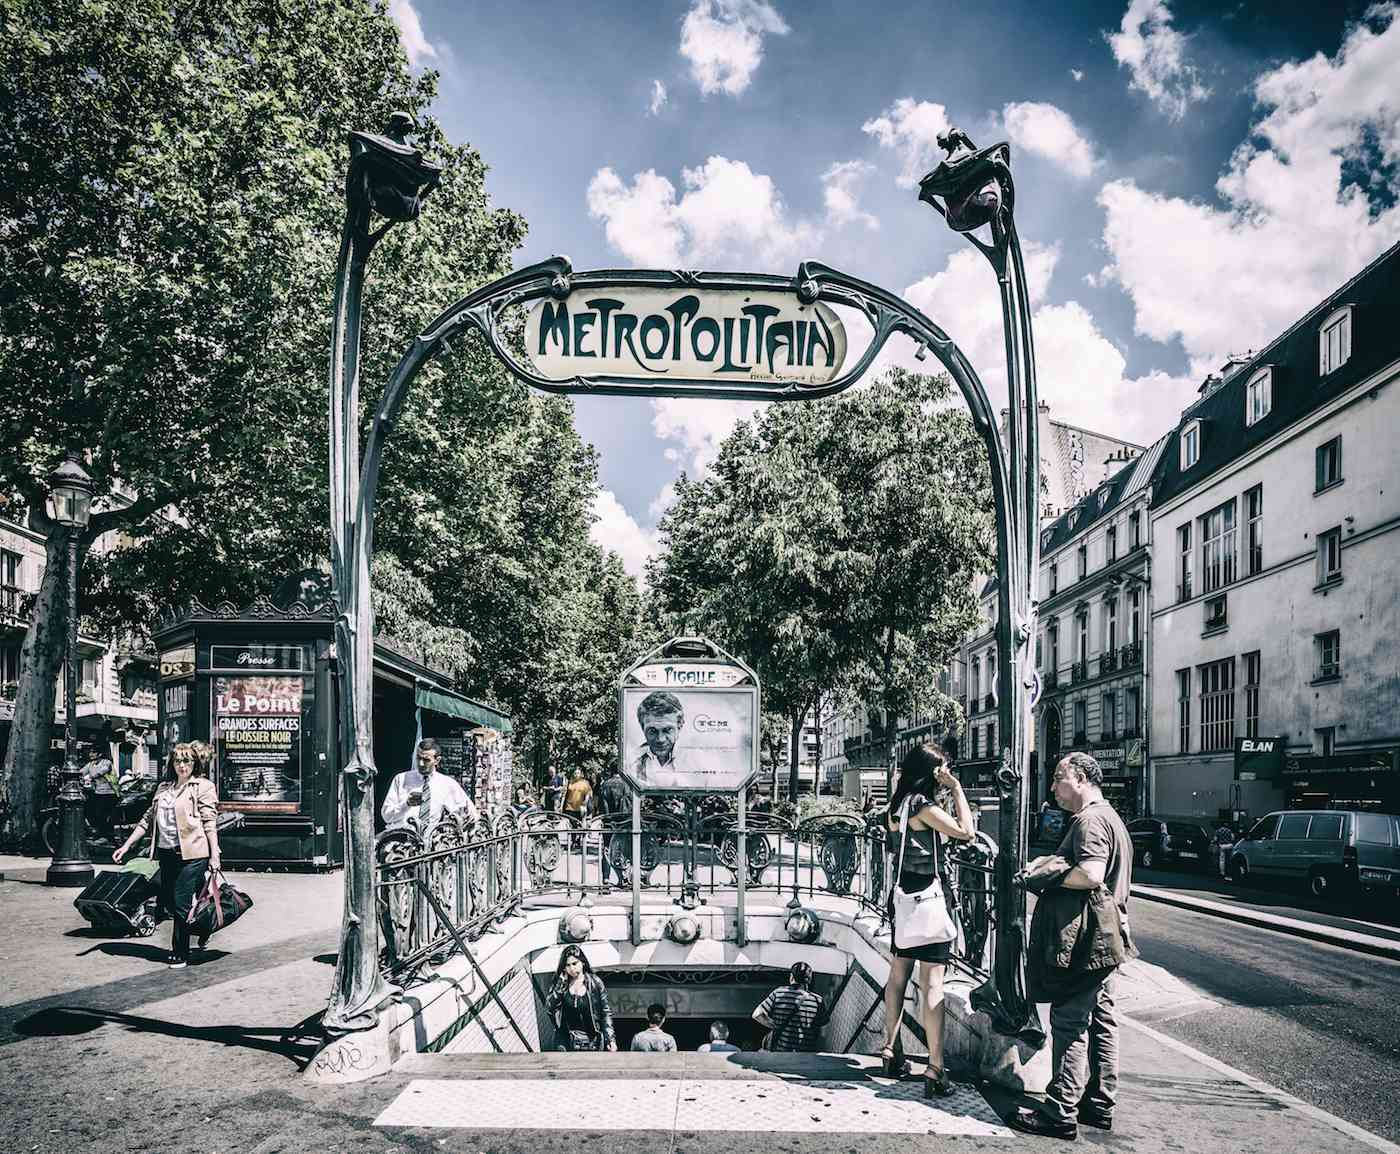 A sunny day in Pigalle, Paris